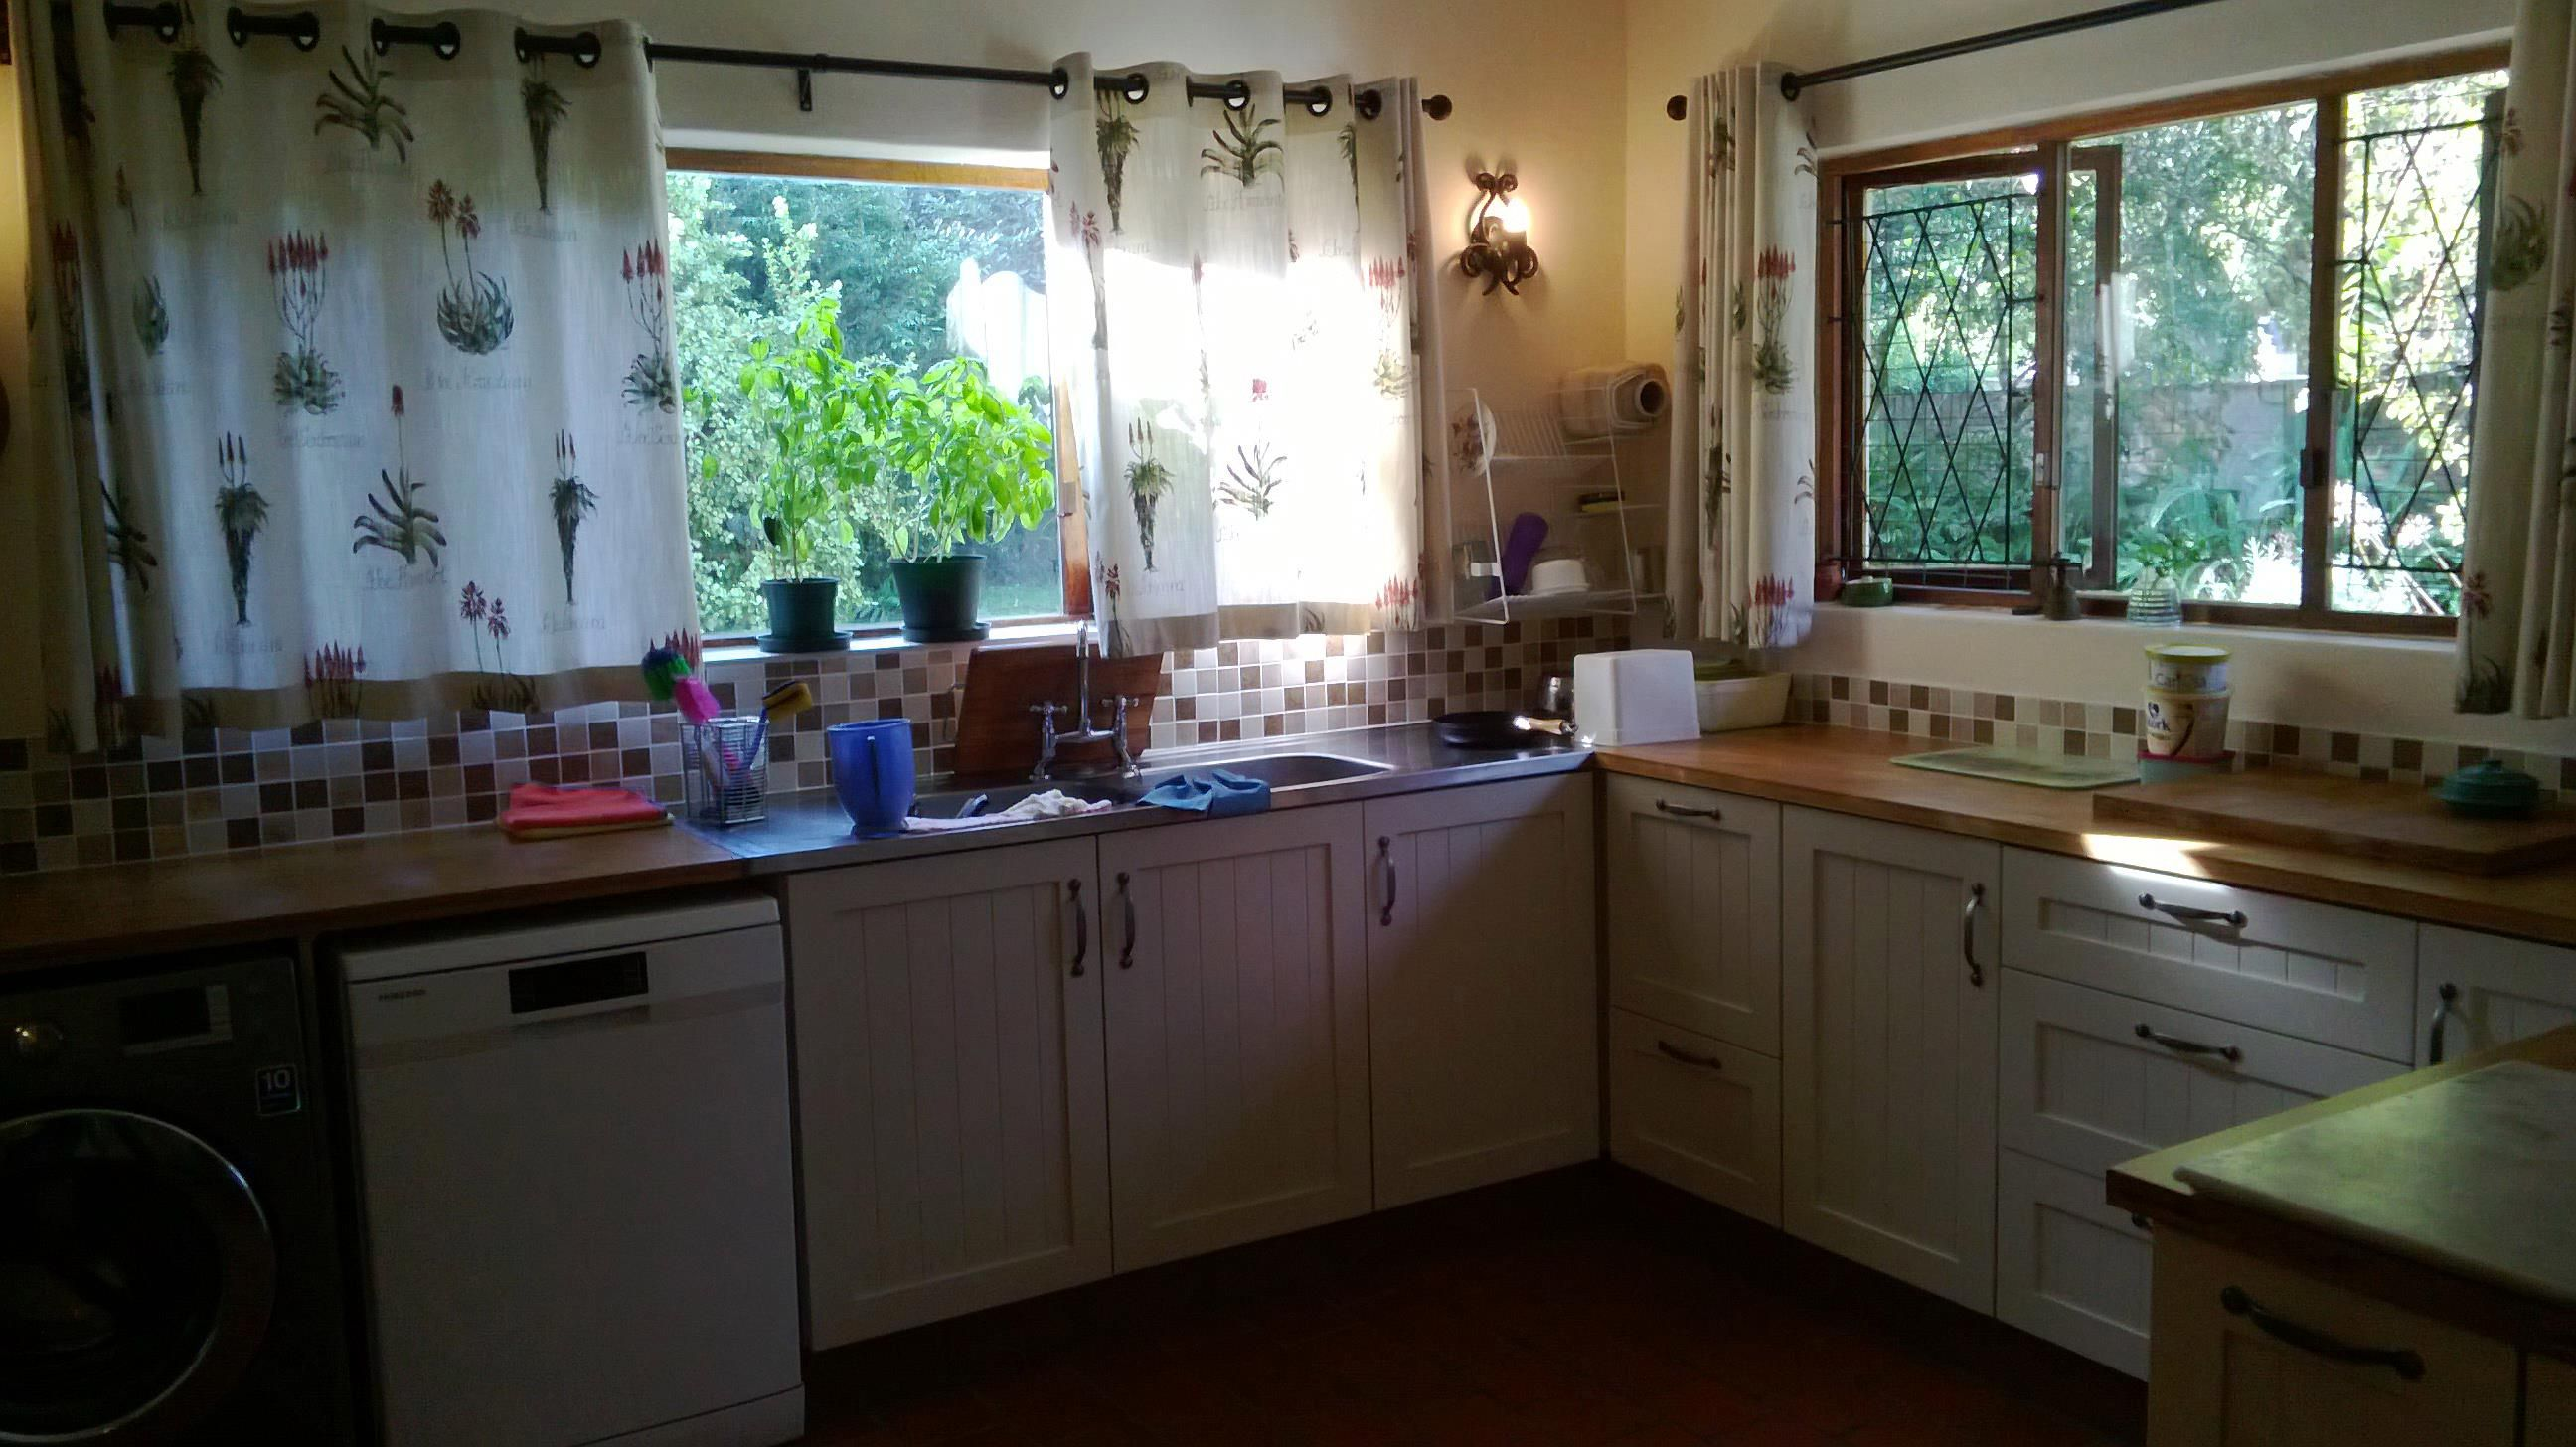 shaker / tongue and groove / light | Kitchen cabinets ...